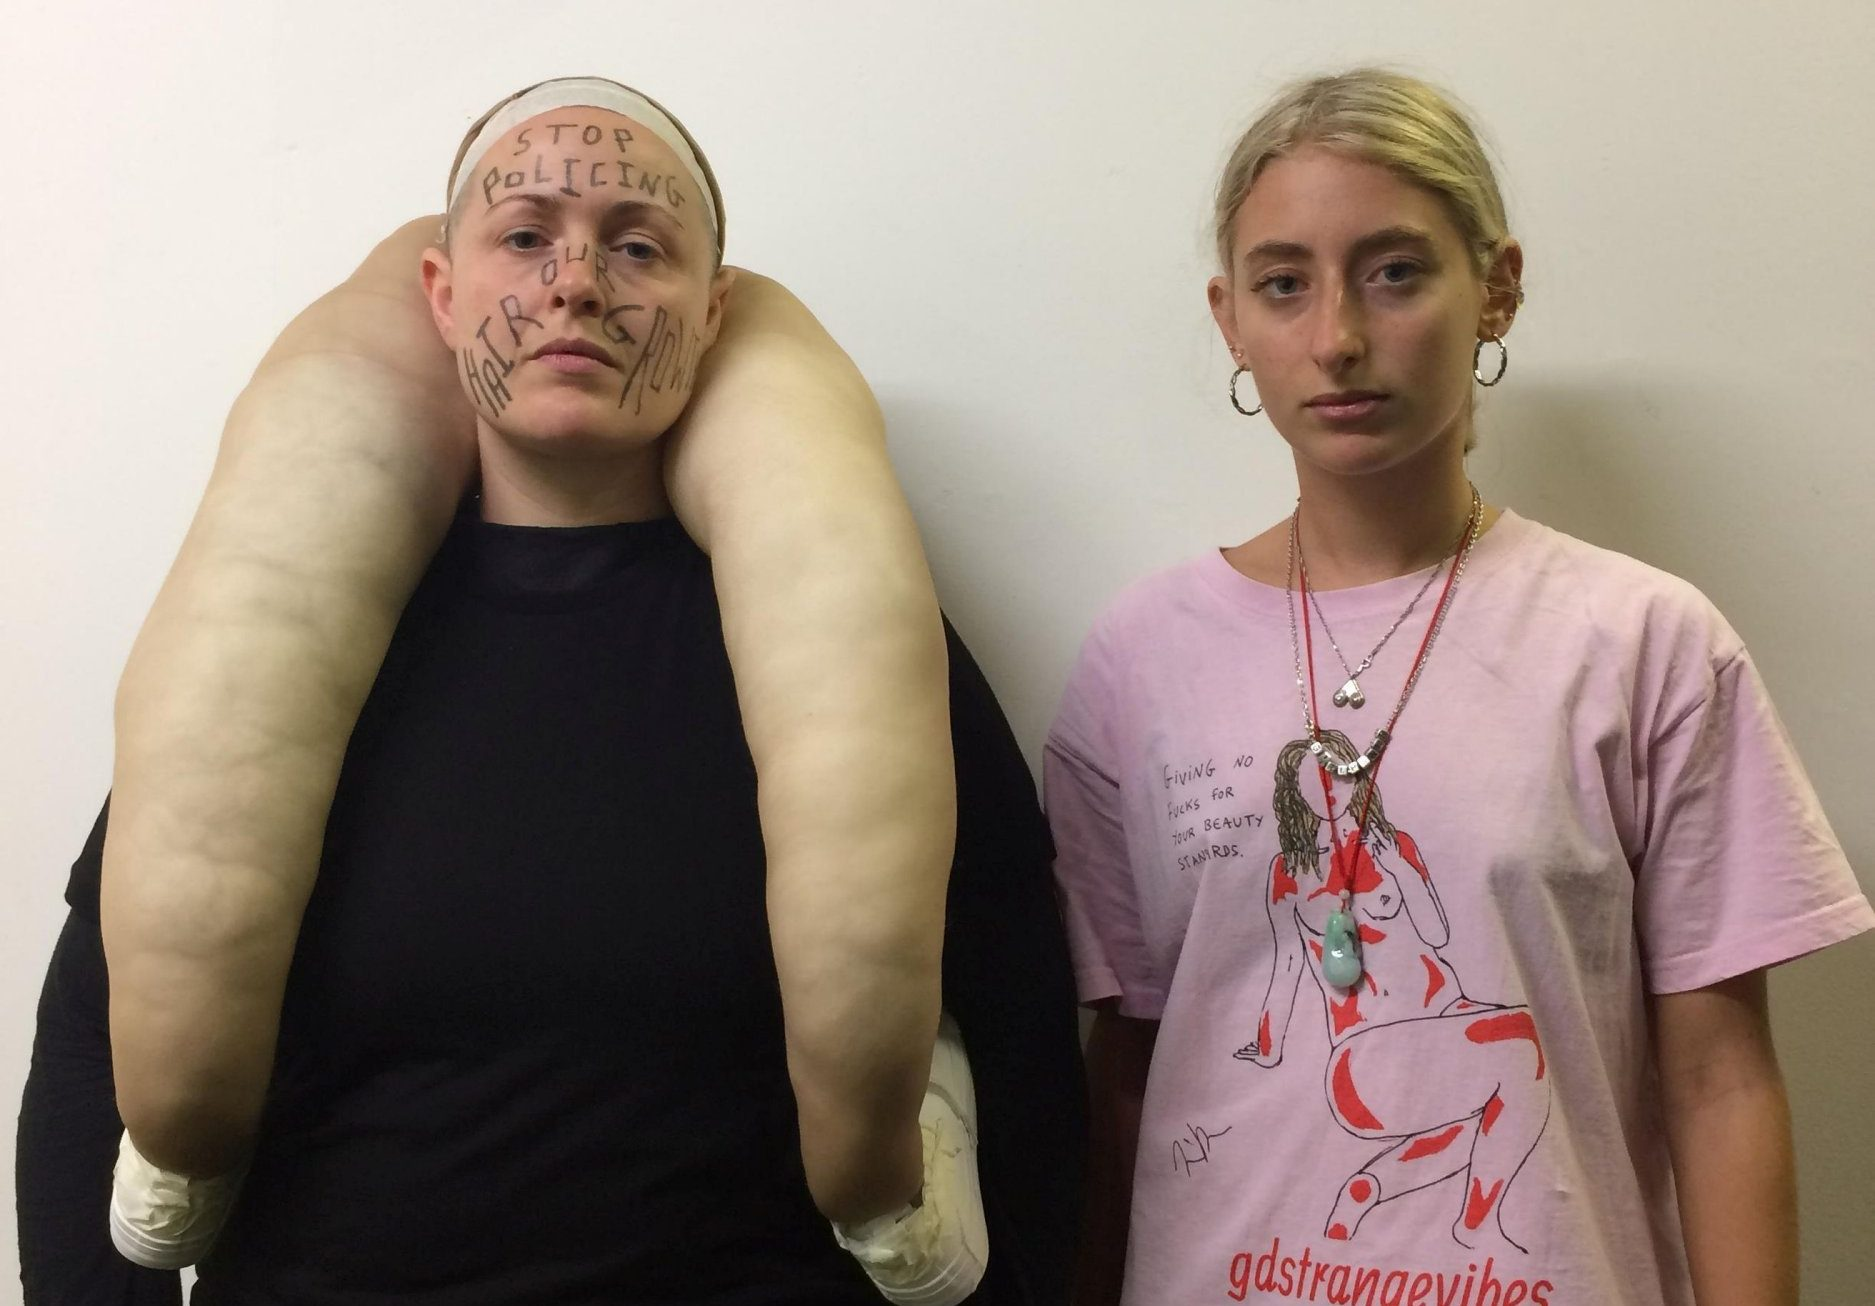 Artist puts legs around model's neck to protest the pressure to get rid of pubes